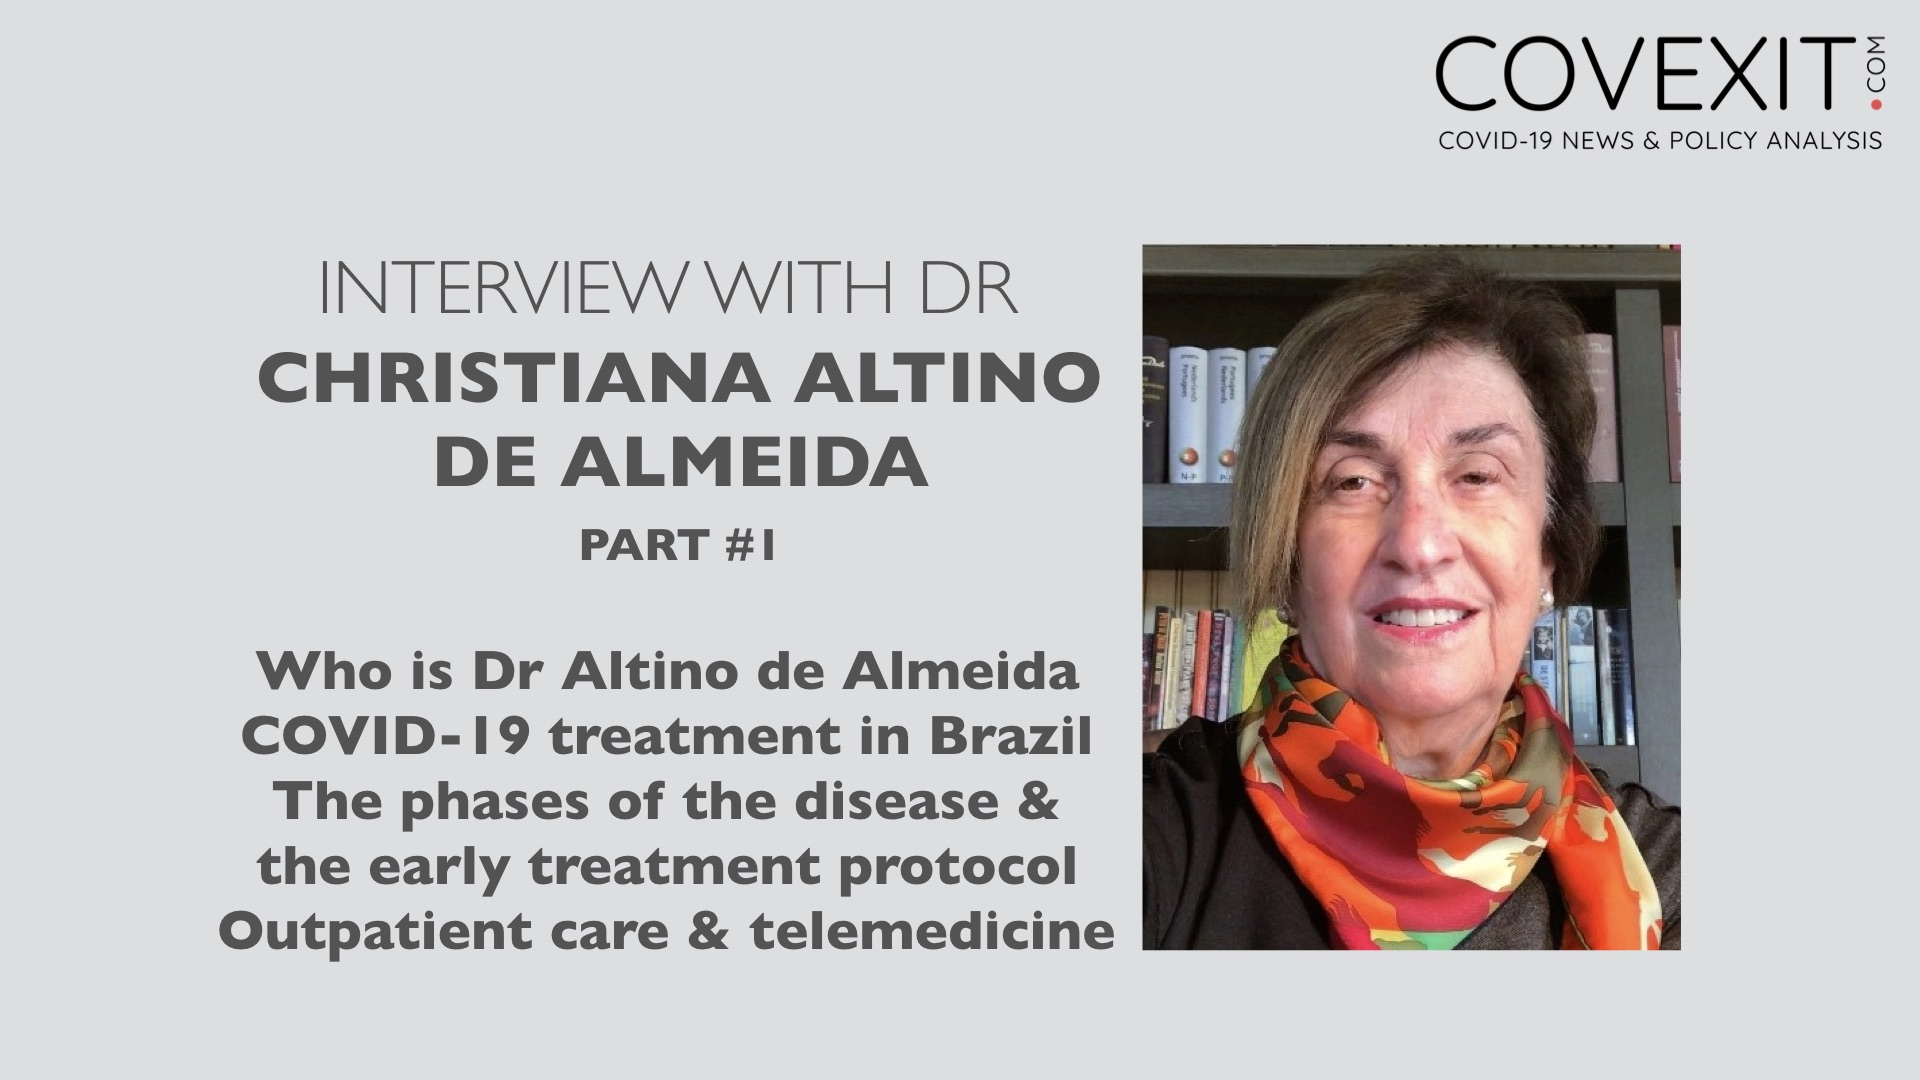 Interview with Dr Altino de Almeida, from Recife, Brazil